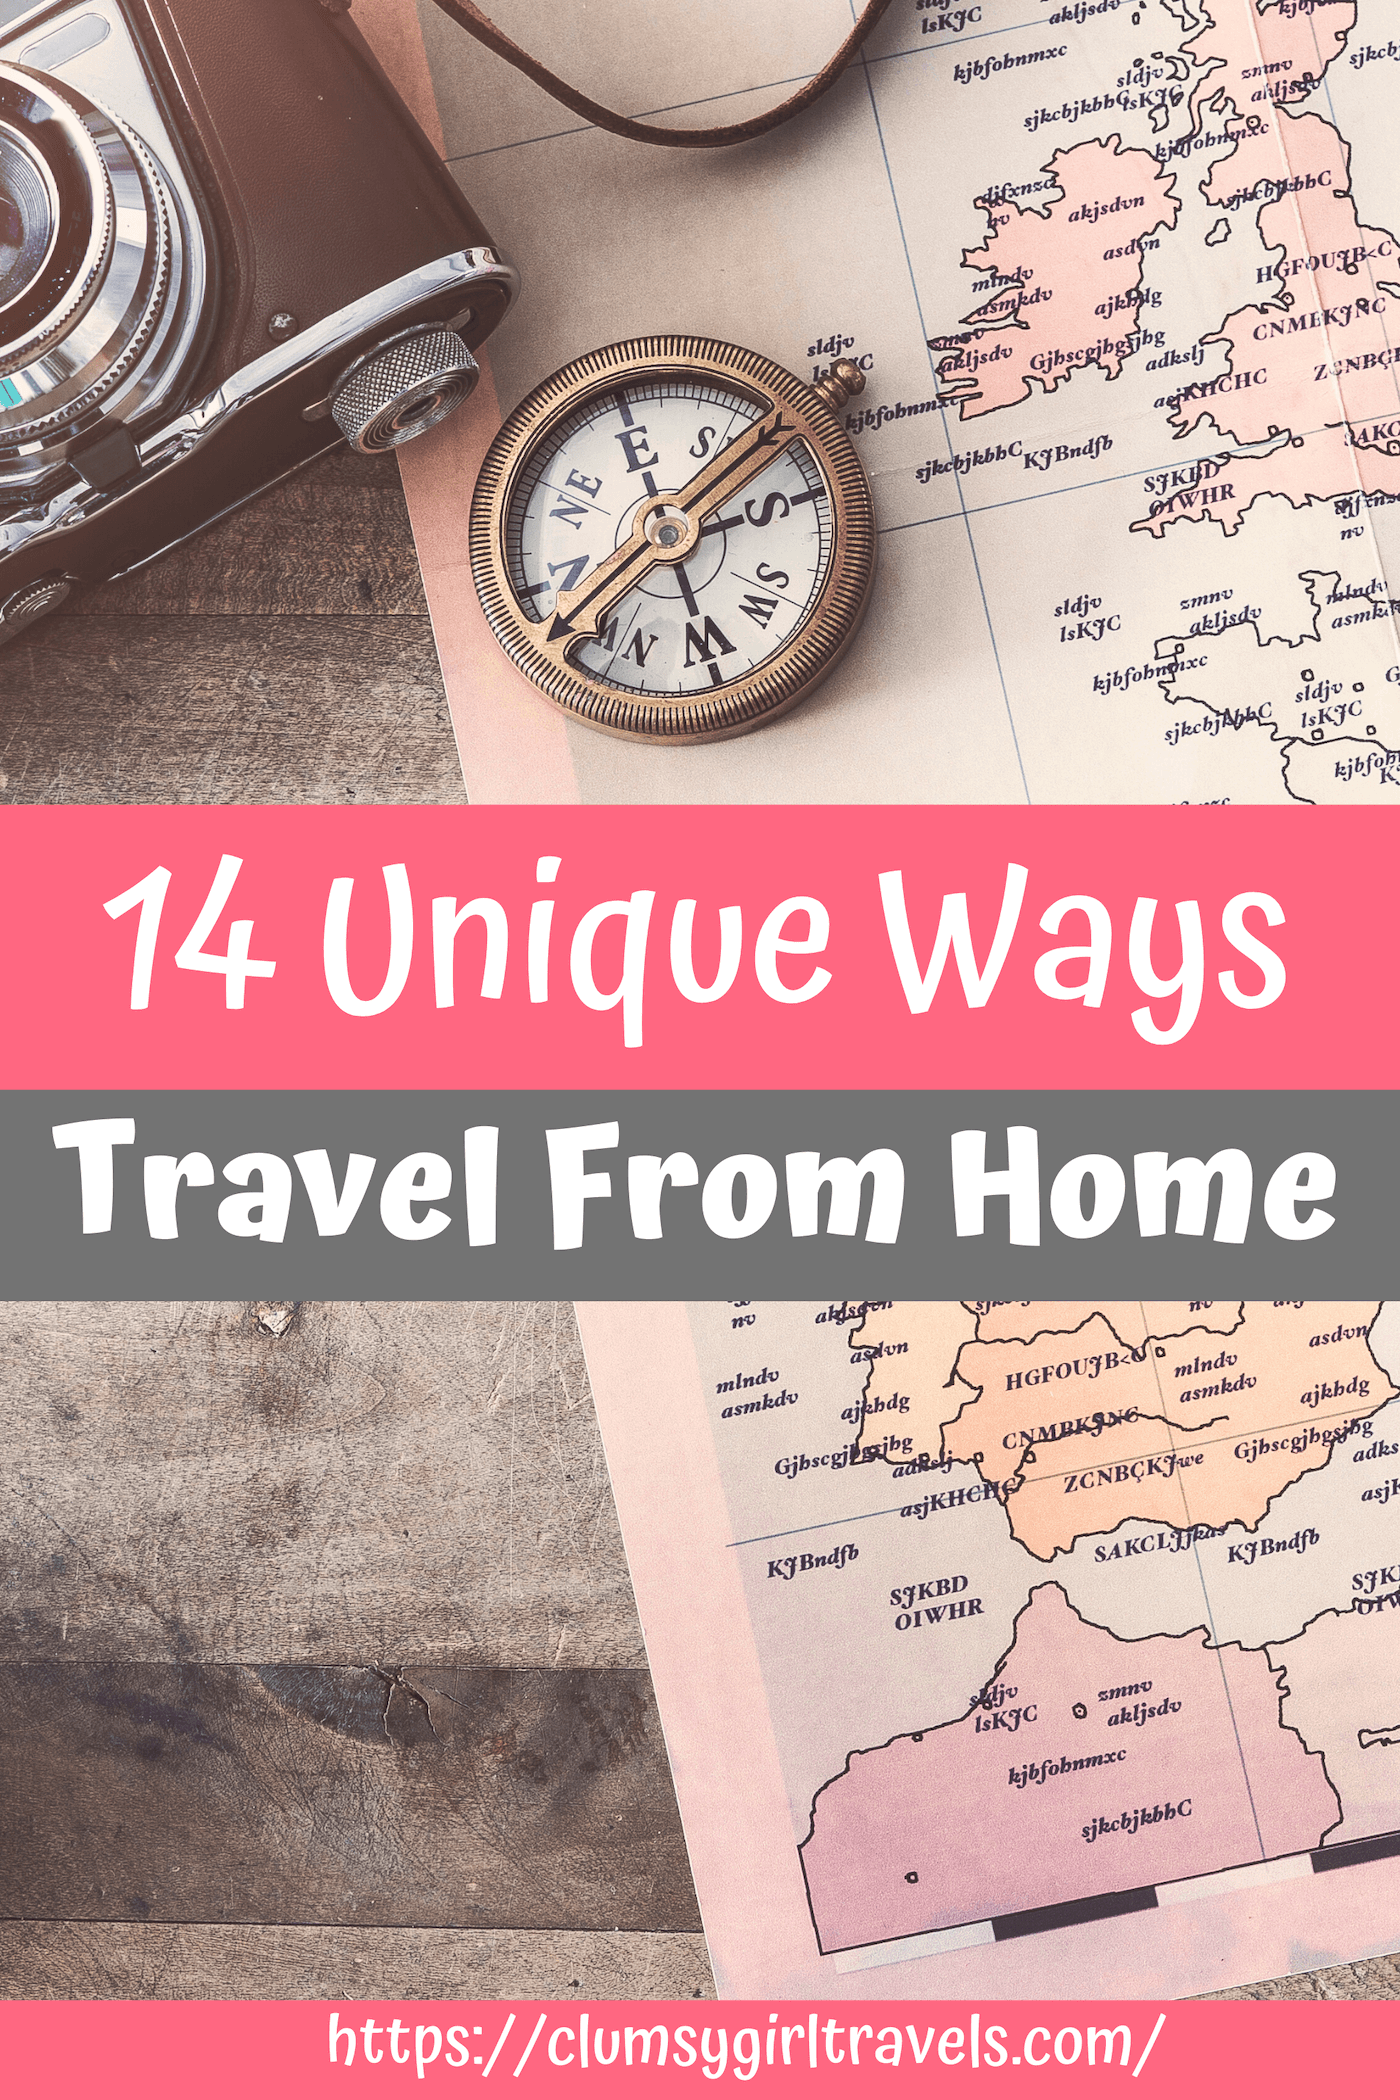 Are you stuck at home, but itching to go on vacation? Here are 14 unique ways you can travel from home.